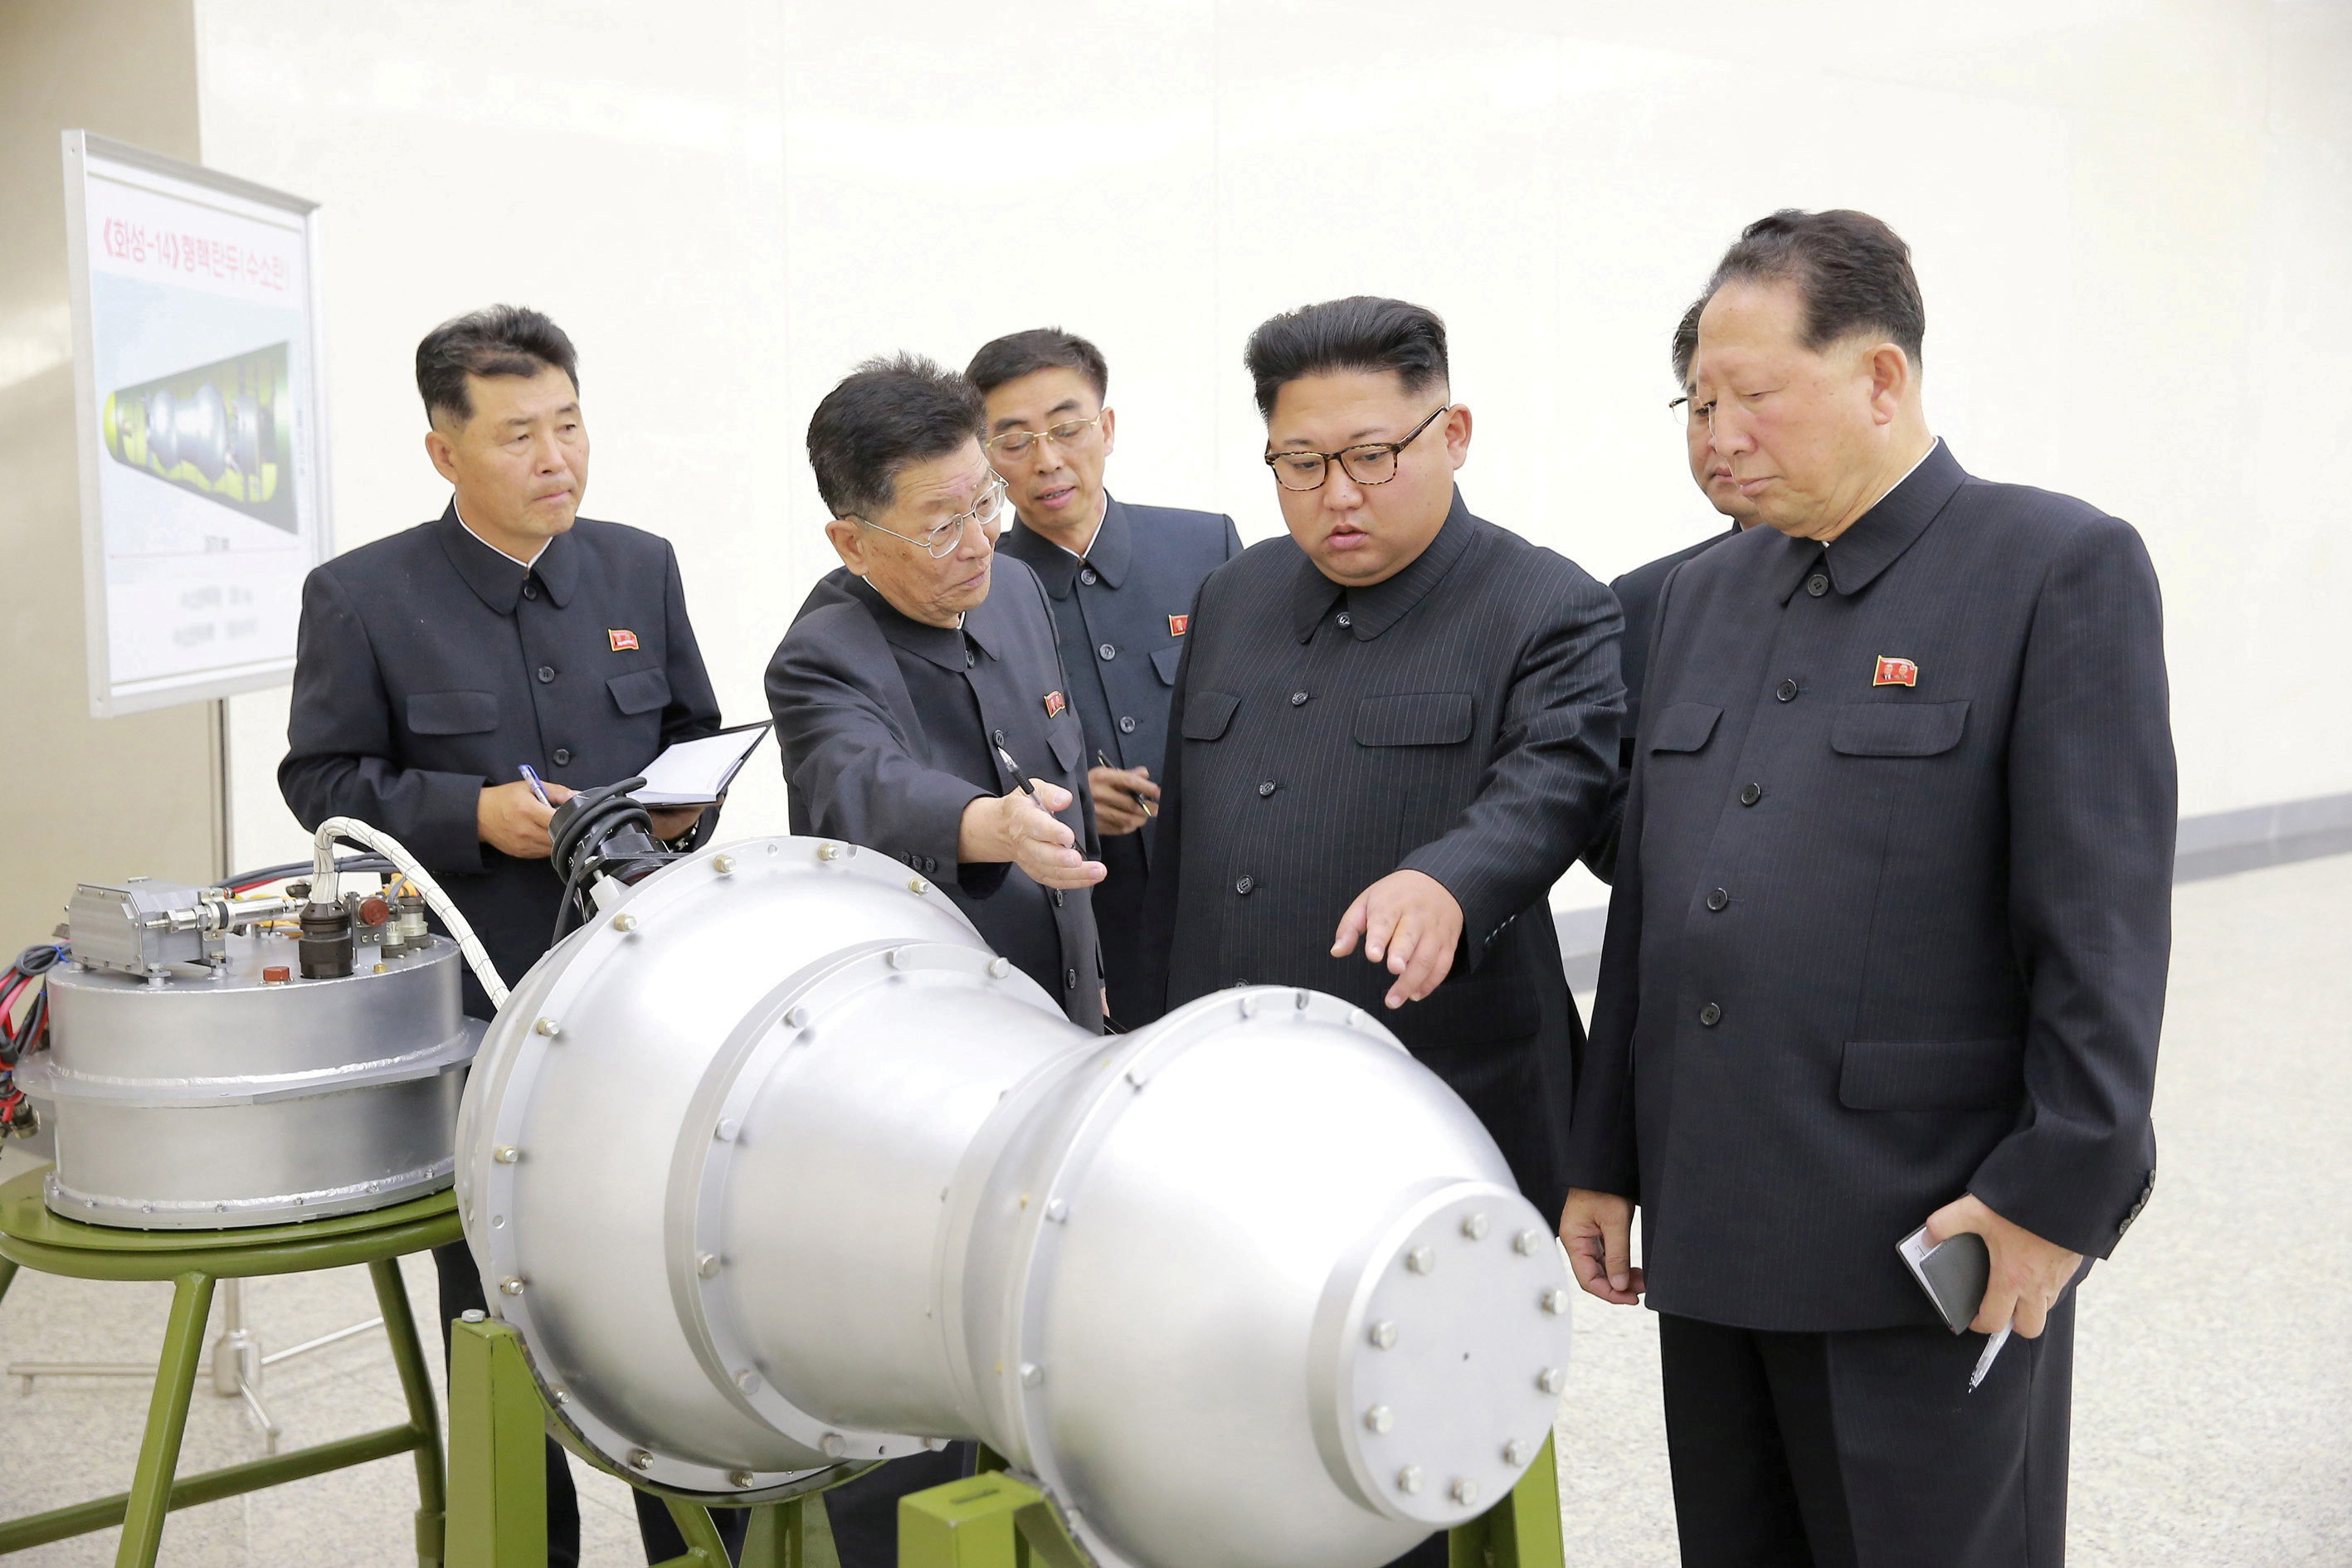 North Korean leader Kim Jong Un provides guidance with Ri Hong Sop (2nd L) and Hong Sung Mu (R) on a nuclear weapons program in this undated photo released by North Korea's Korean Central News Agency (KCNA) in Pyongyang September 3, 2017. KCNA via REUTERS ATTENTION EDITORS - THIS PICTURE WAS PROVIDED BY A THIRD PARTY. REUTERS IS UNABLE TO INDEPENDENTLY VERIFY THE AUTHENTICITY, CONTENT, LOCATION OR DATE OF THIS IMAGE. NOT FOR SALE FOR MARKETING OR ADVERTISING CAMPAIGNS. NO THIRD PARTY SALES. NOT FOR USE BY REUTERS THIRD PARTY DISTRIBUTORS. SOUTH KOREA OUT. NO COMMERCIAL OR EDITORIAL SALES IN SOUTH KOREA. THIS PICTURE IS DISTRIBUTED EXACTLY AS RECEIVED BY REUTERS, AS A SERVICE TO CLIENTS.